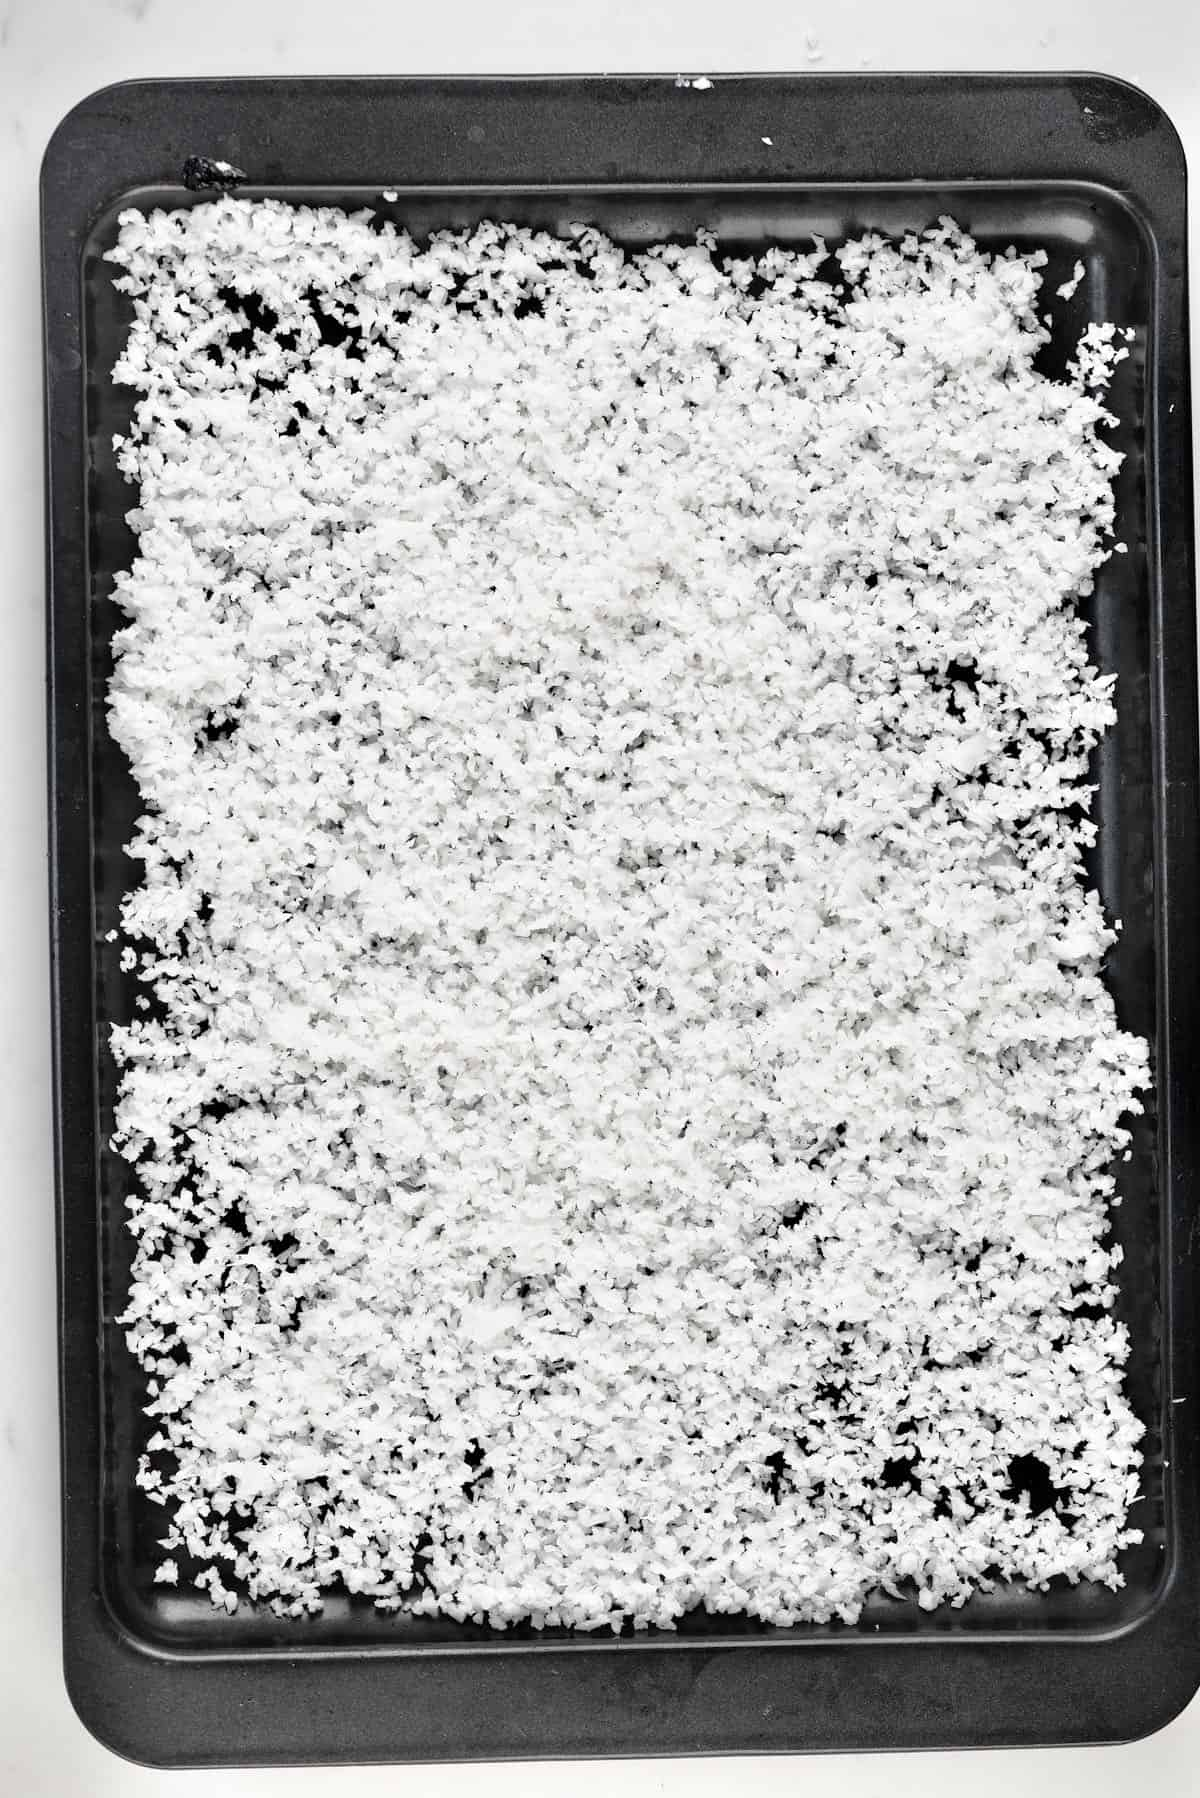 Shredded Coconut in a tray